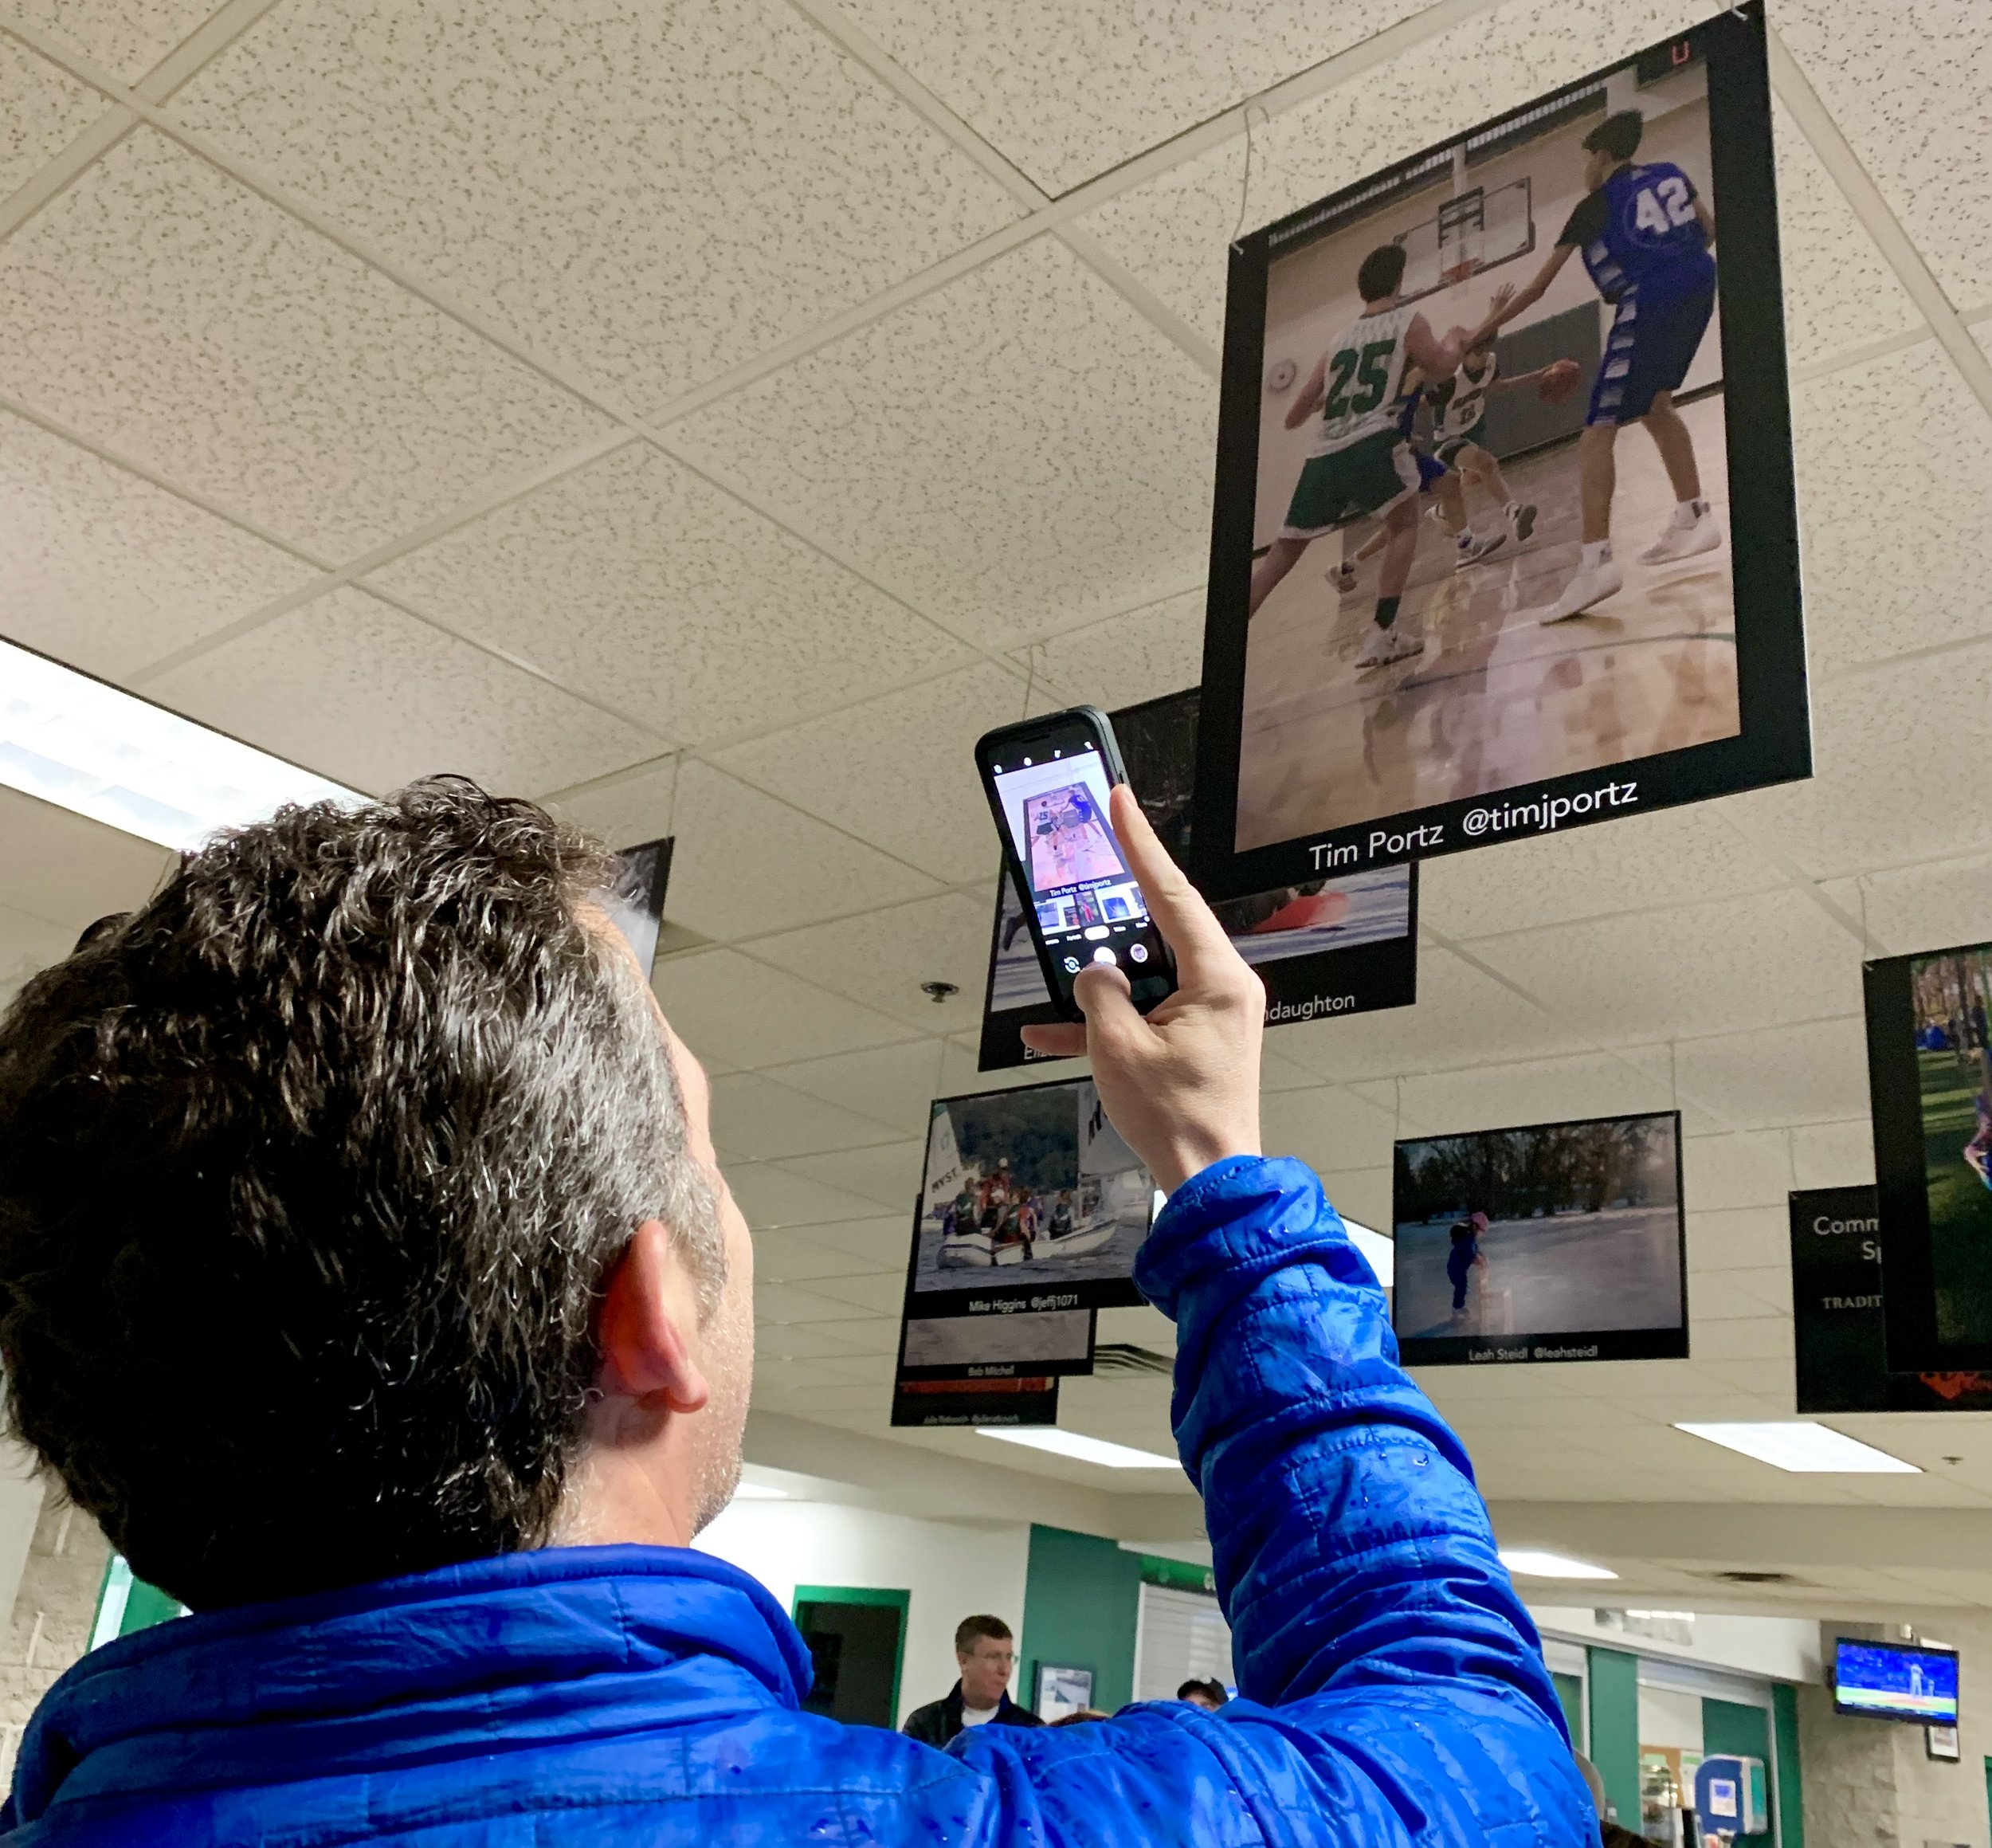 Braemar Arena: Edina Sports Community Photography Gallery    In partnership with Edina Park and Rec. In support of Edina Athletics.   May 2019